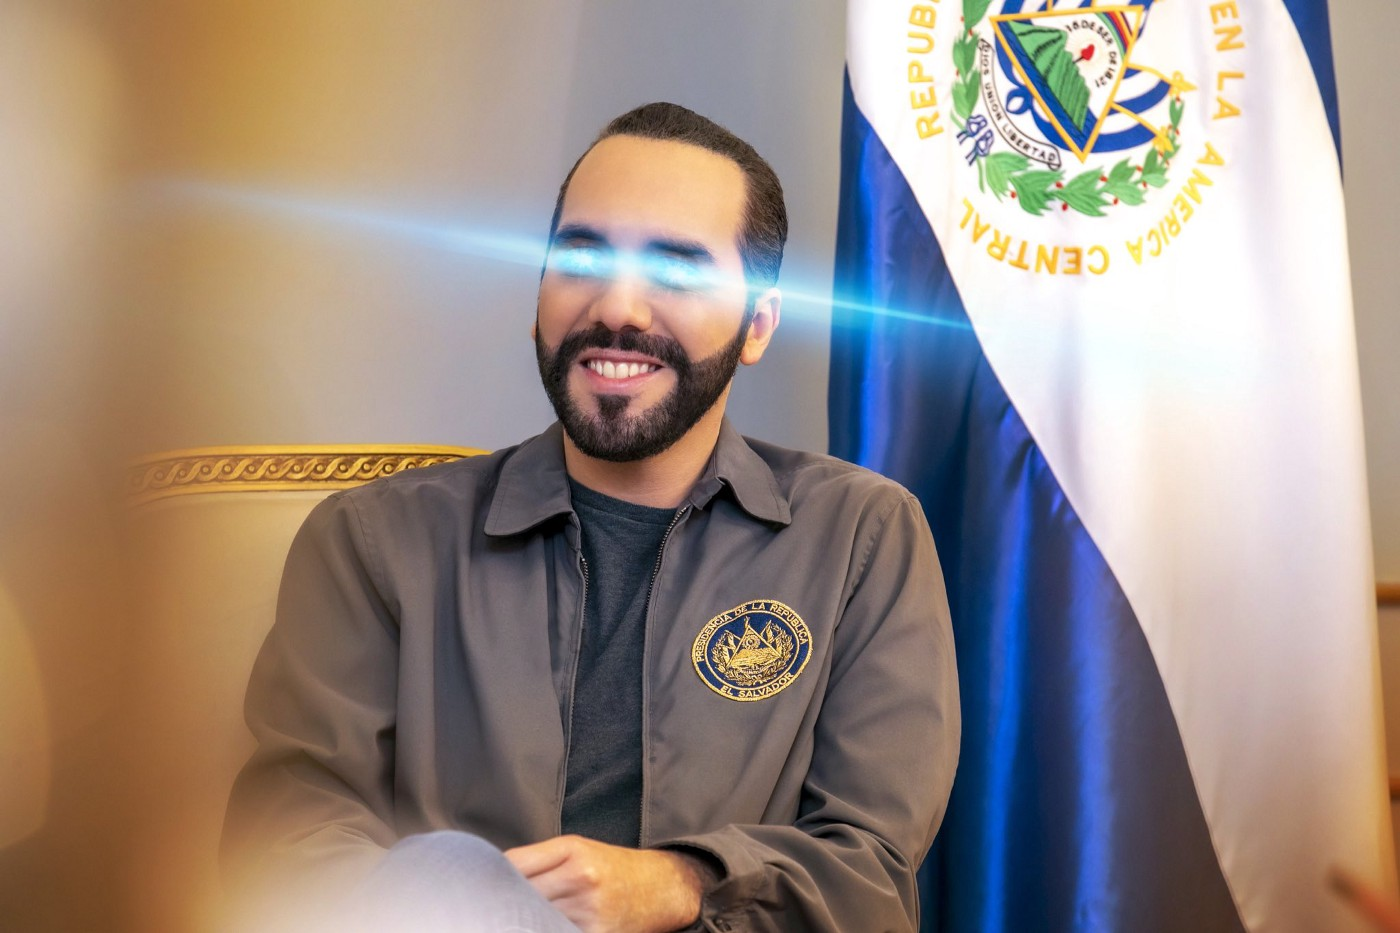 The President of El Salvador's current Twitter profile pic. Blue lasers beam from his eyes.